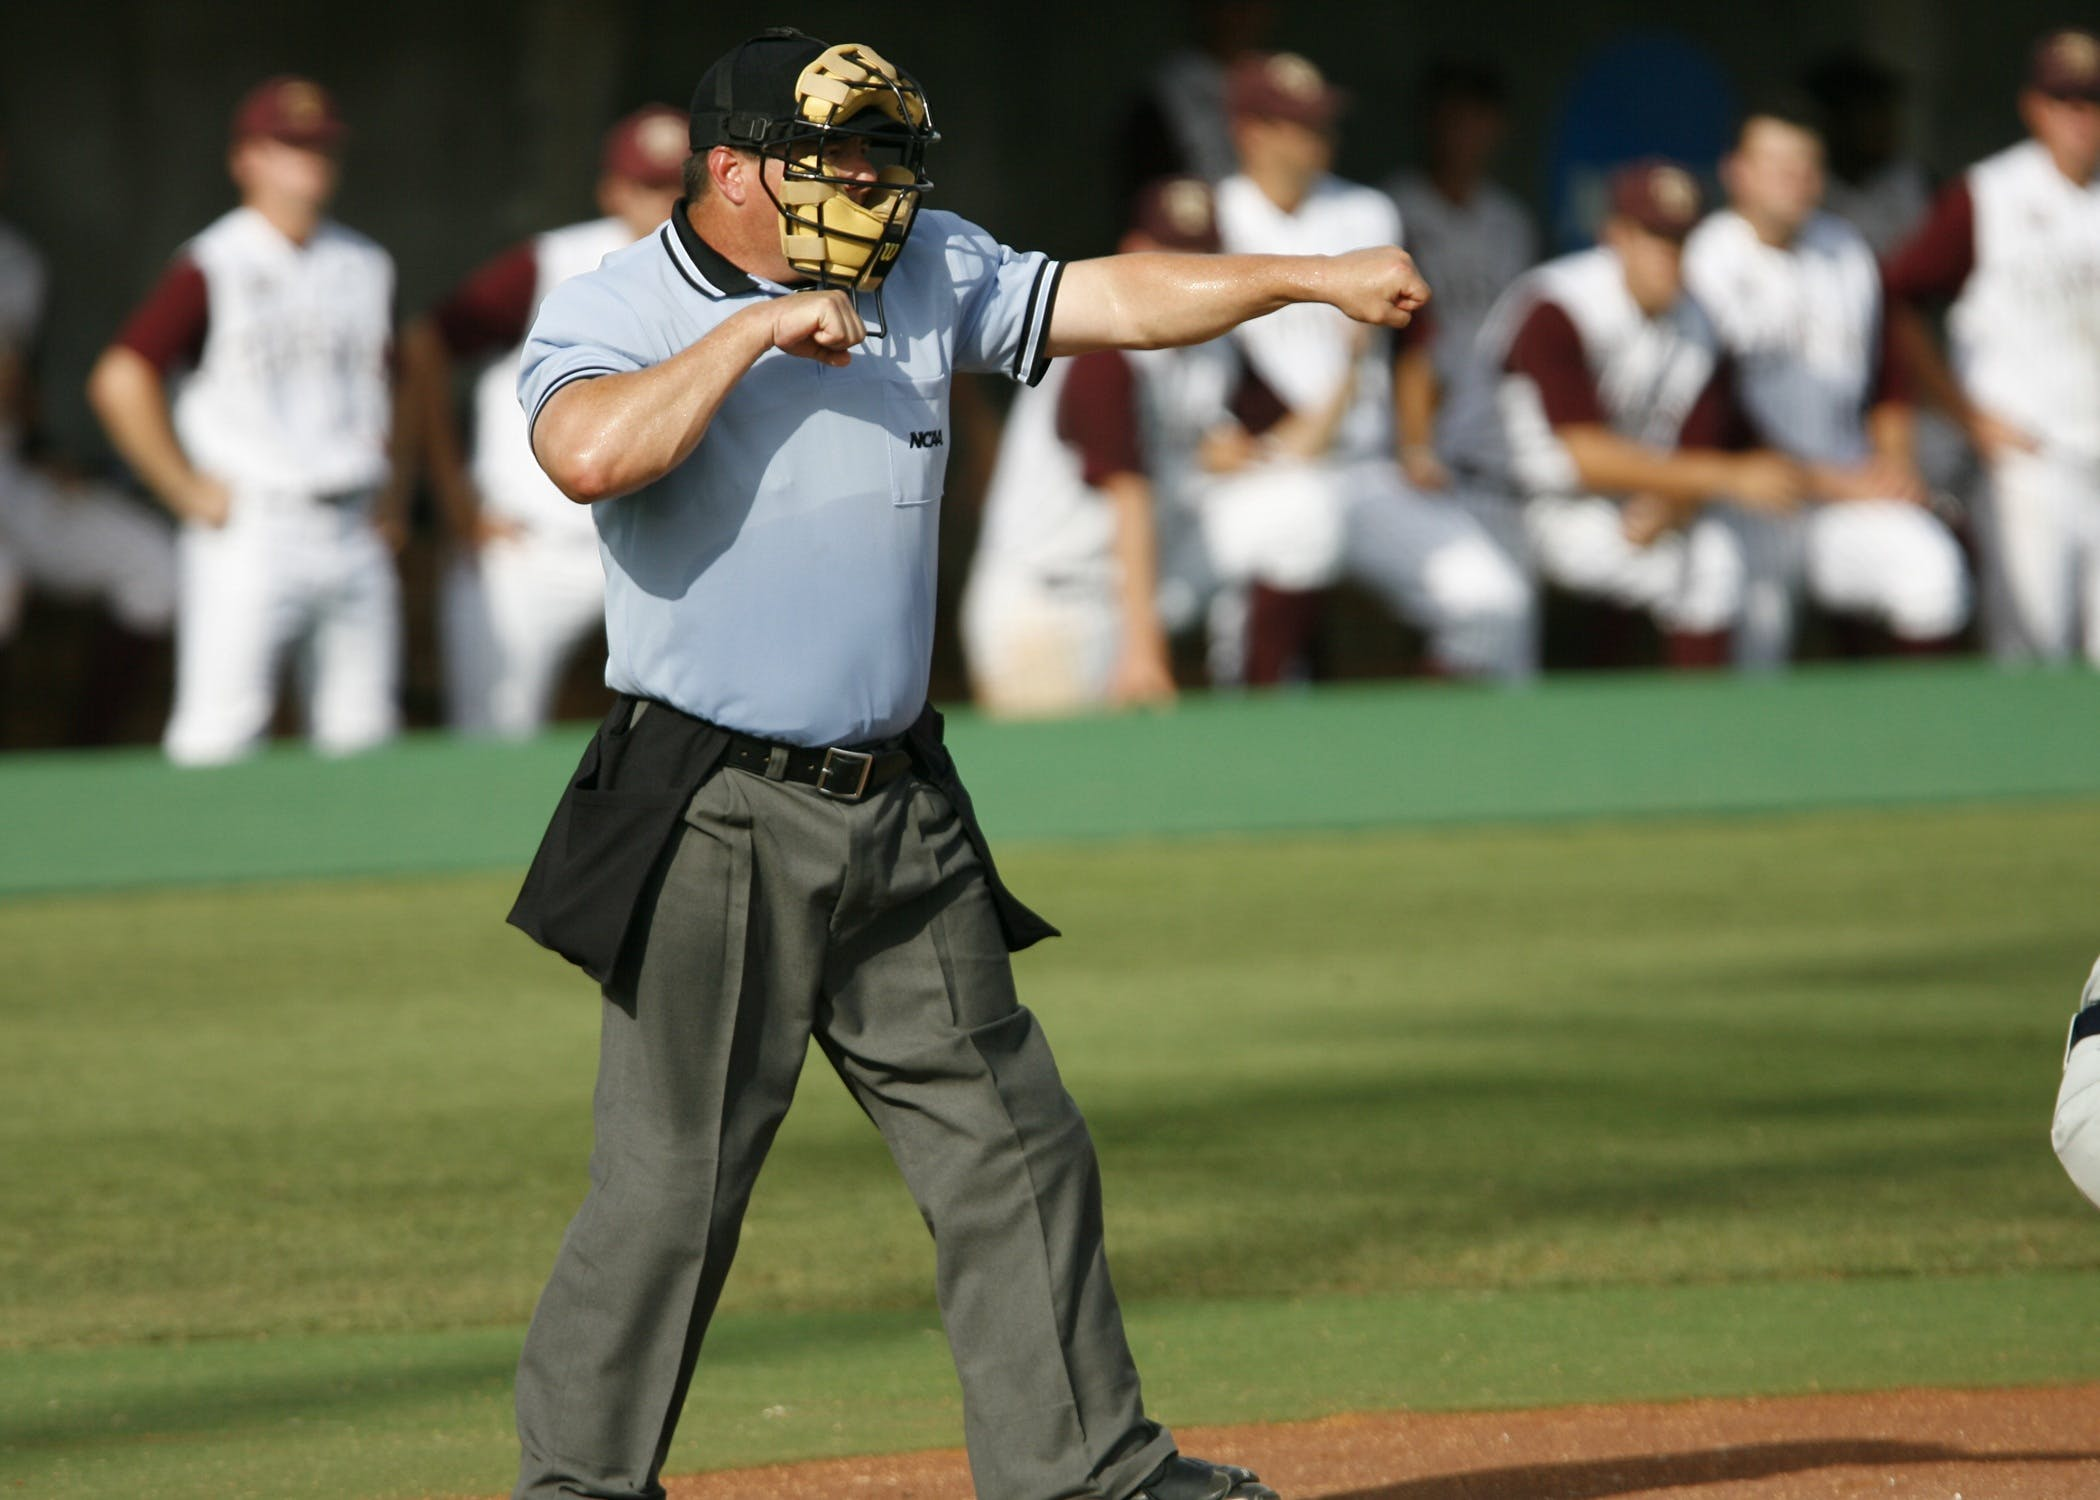 Tilt Shift Photography of a Baseball Referee